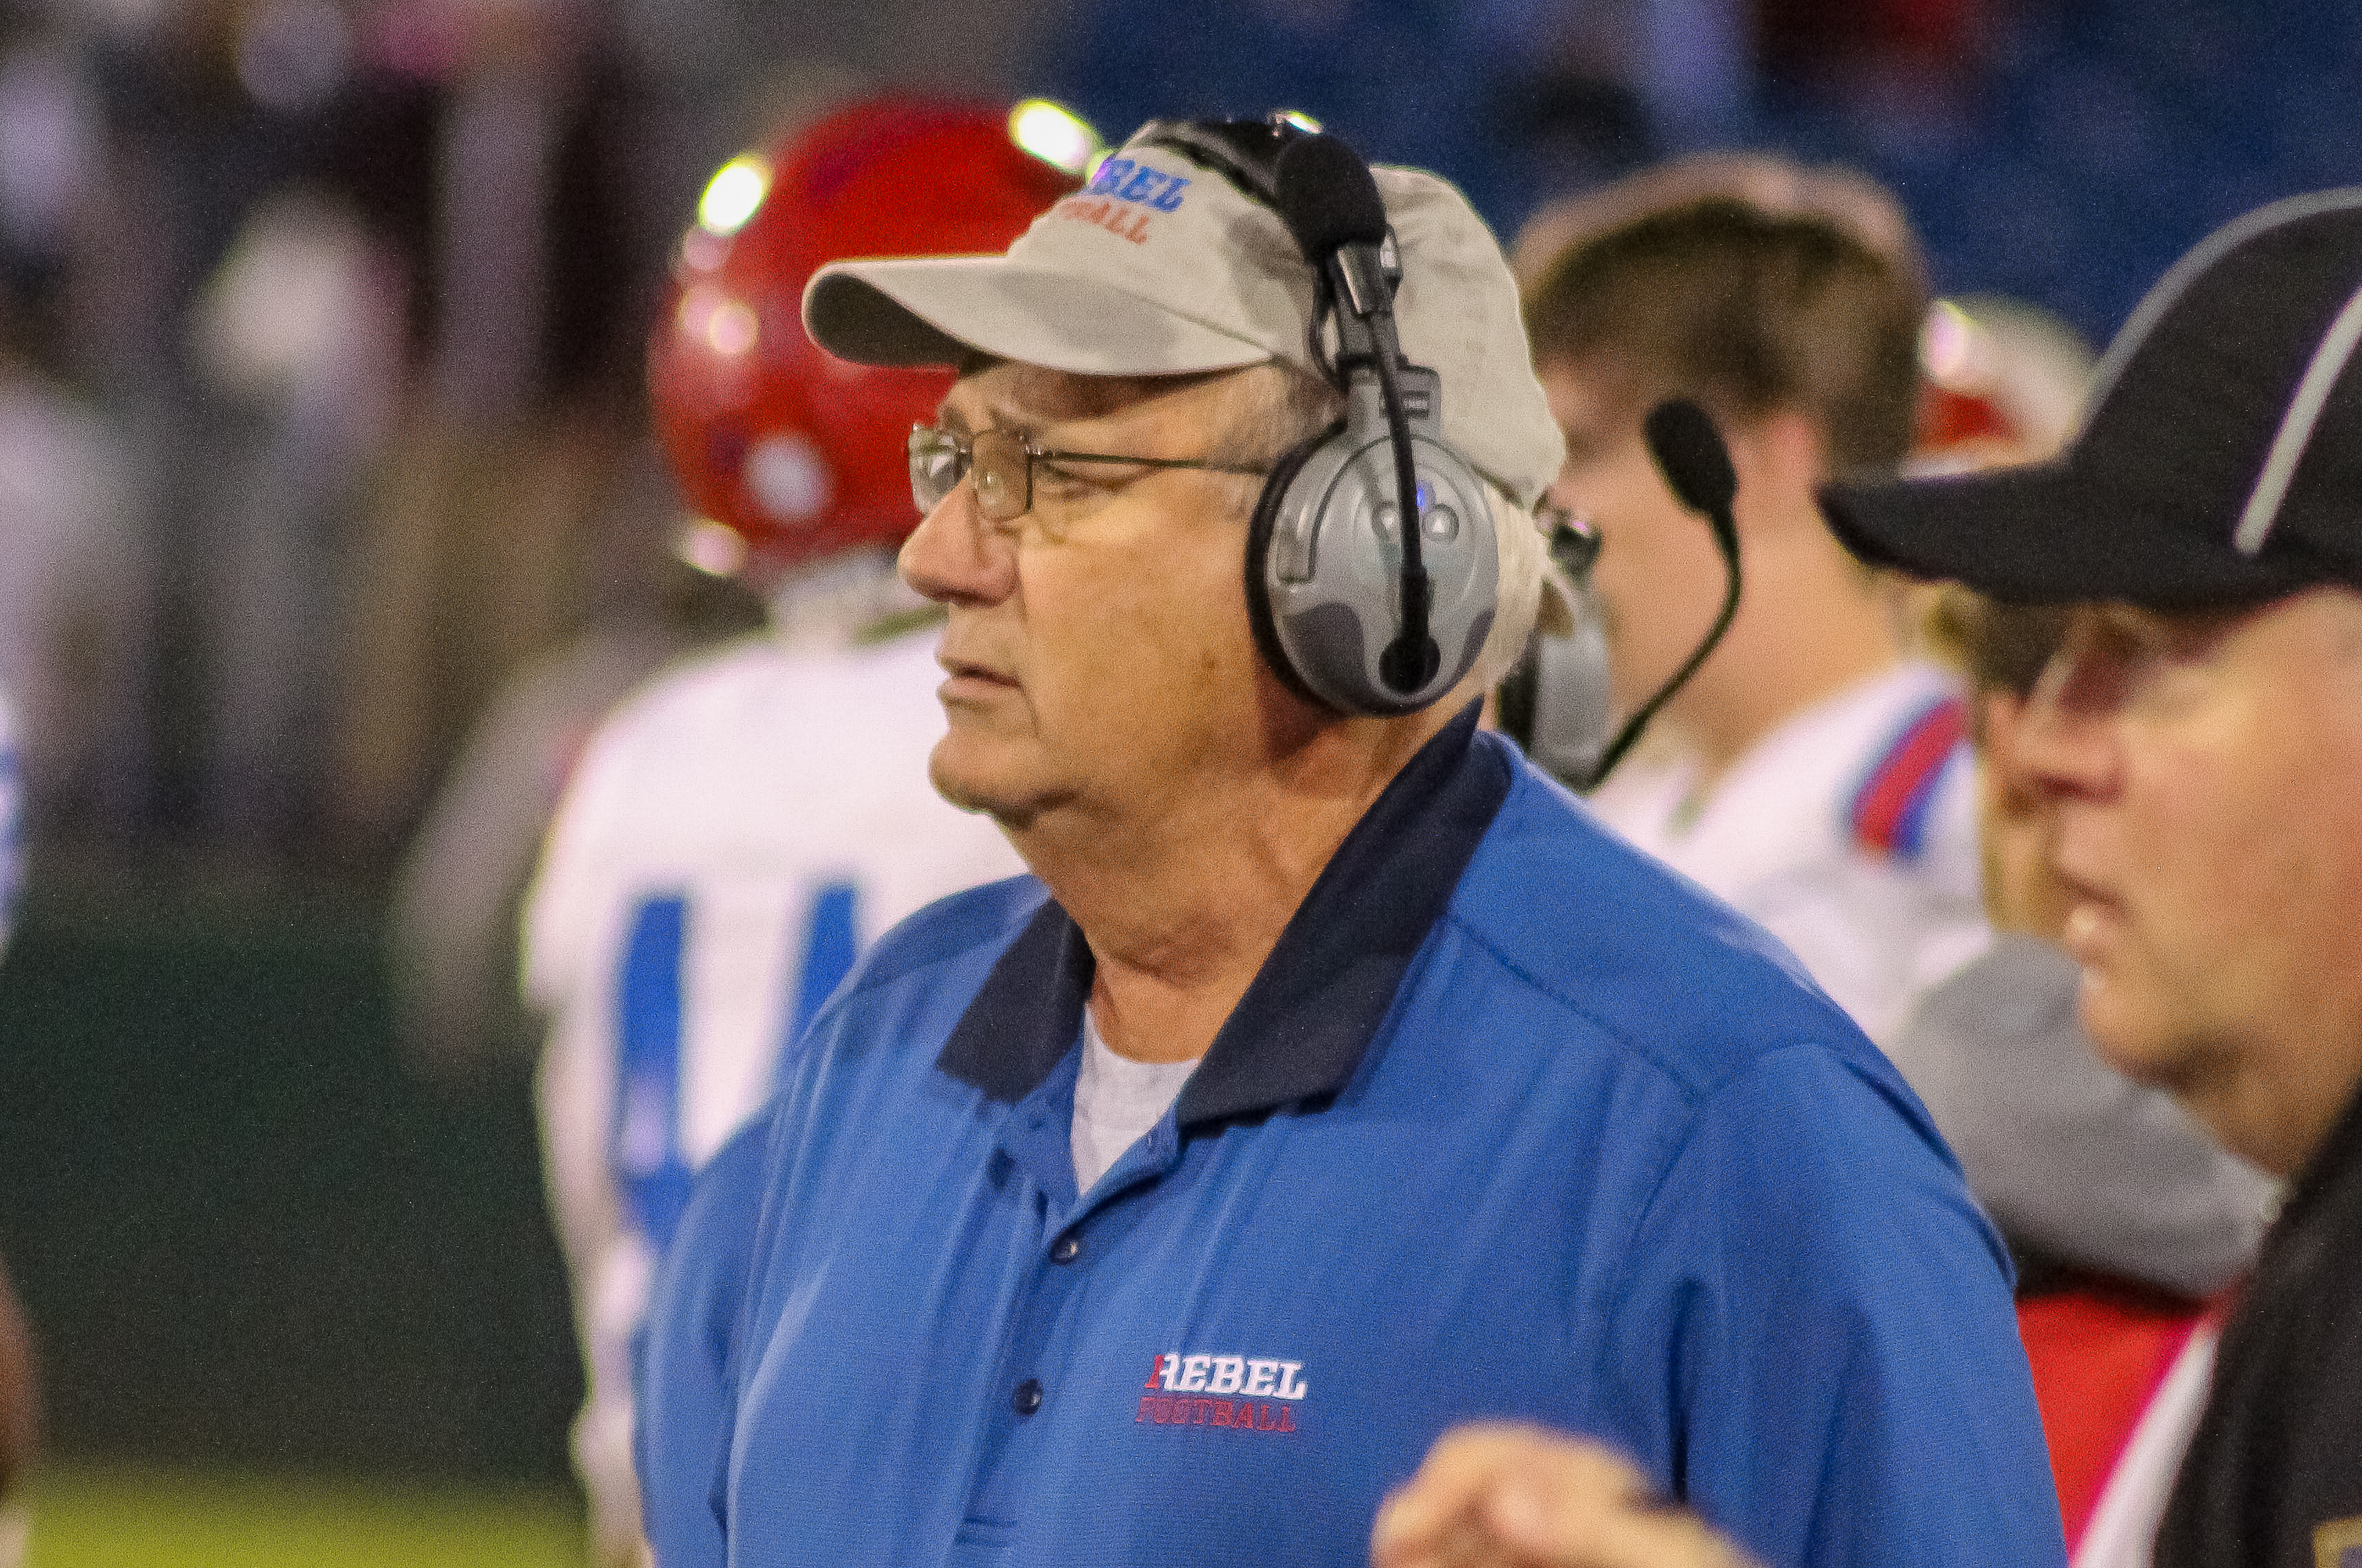 Vestavia head coach Buddy Anderson